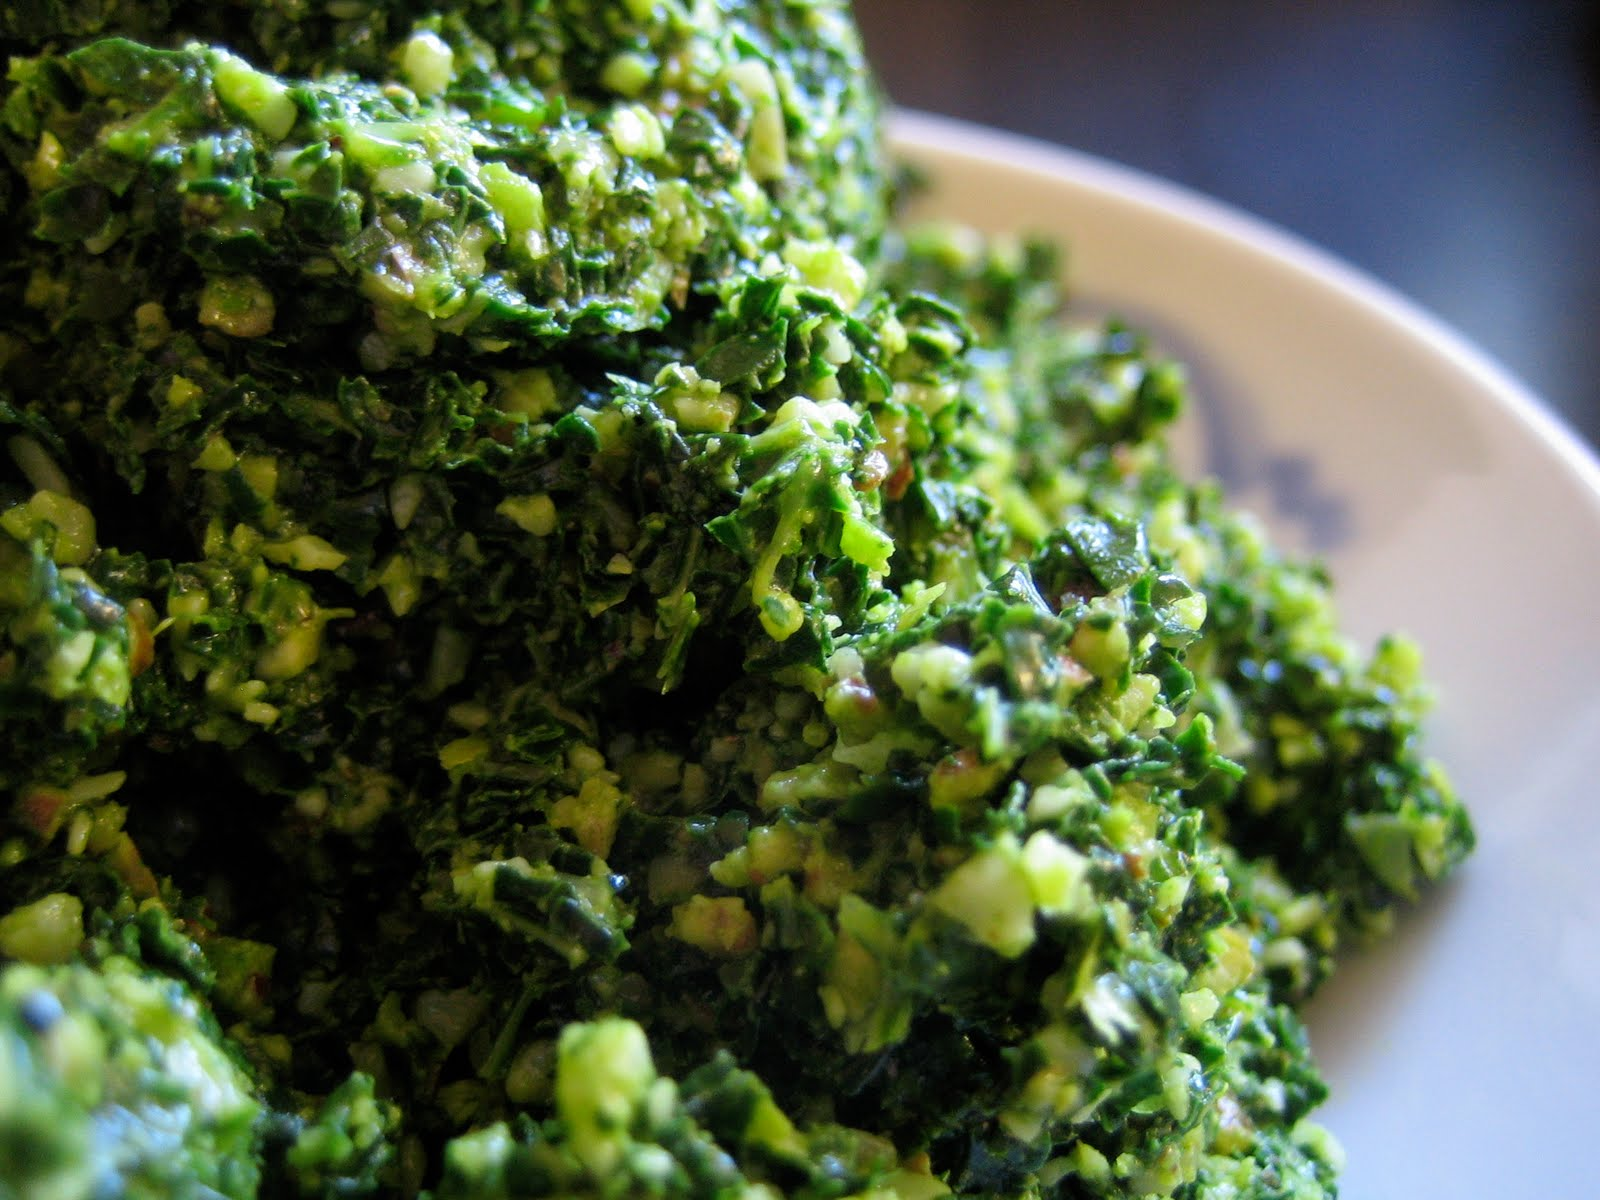 seaweed snacks: Lemon Kale Pesto with Nutmeg